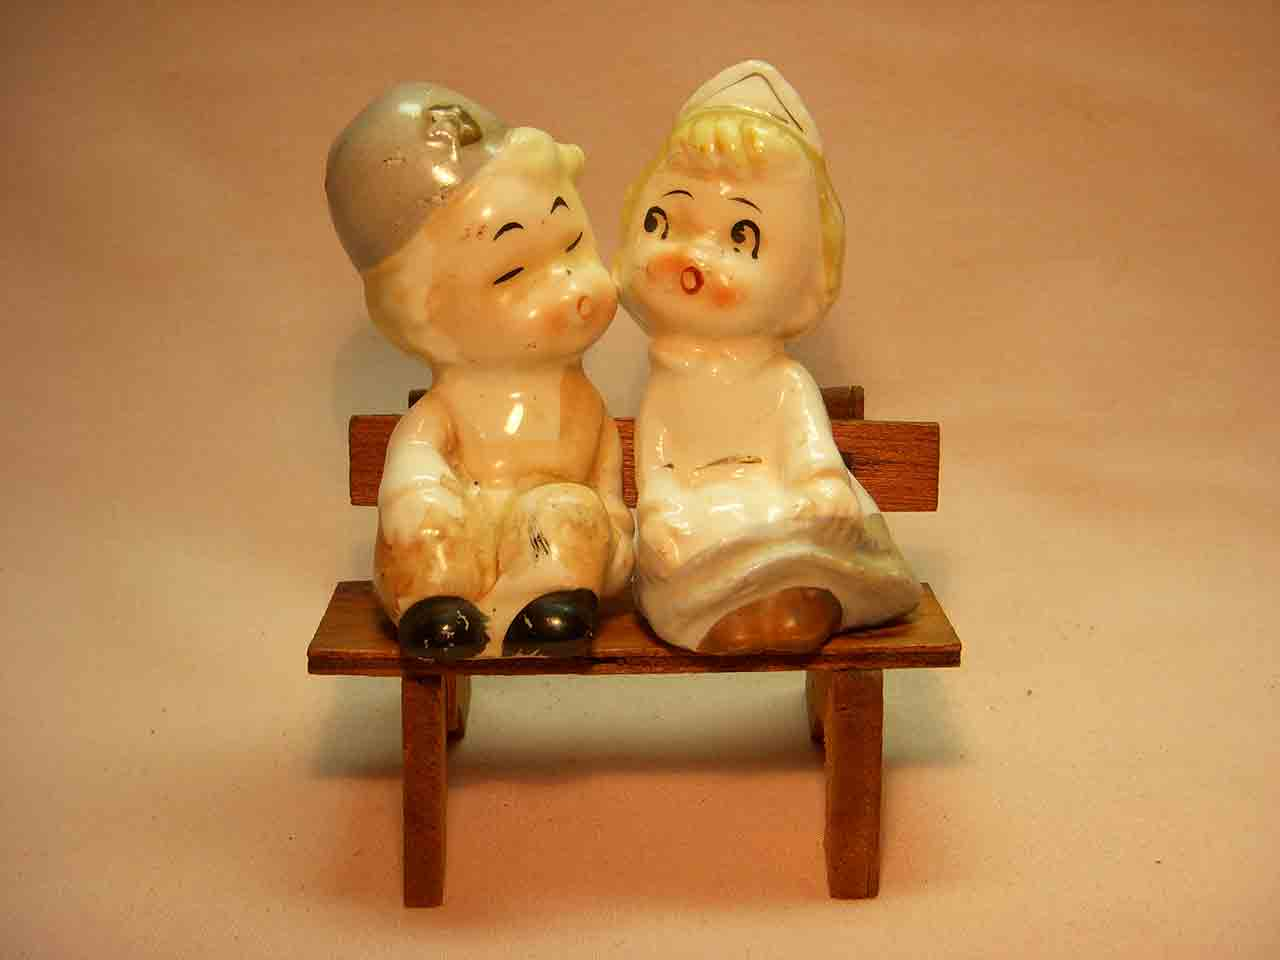 Little boy and nurse girl sitting on wooden bench salt and pepper shaker